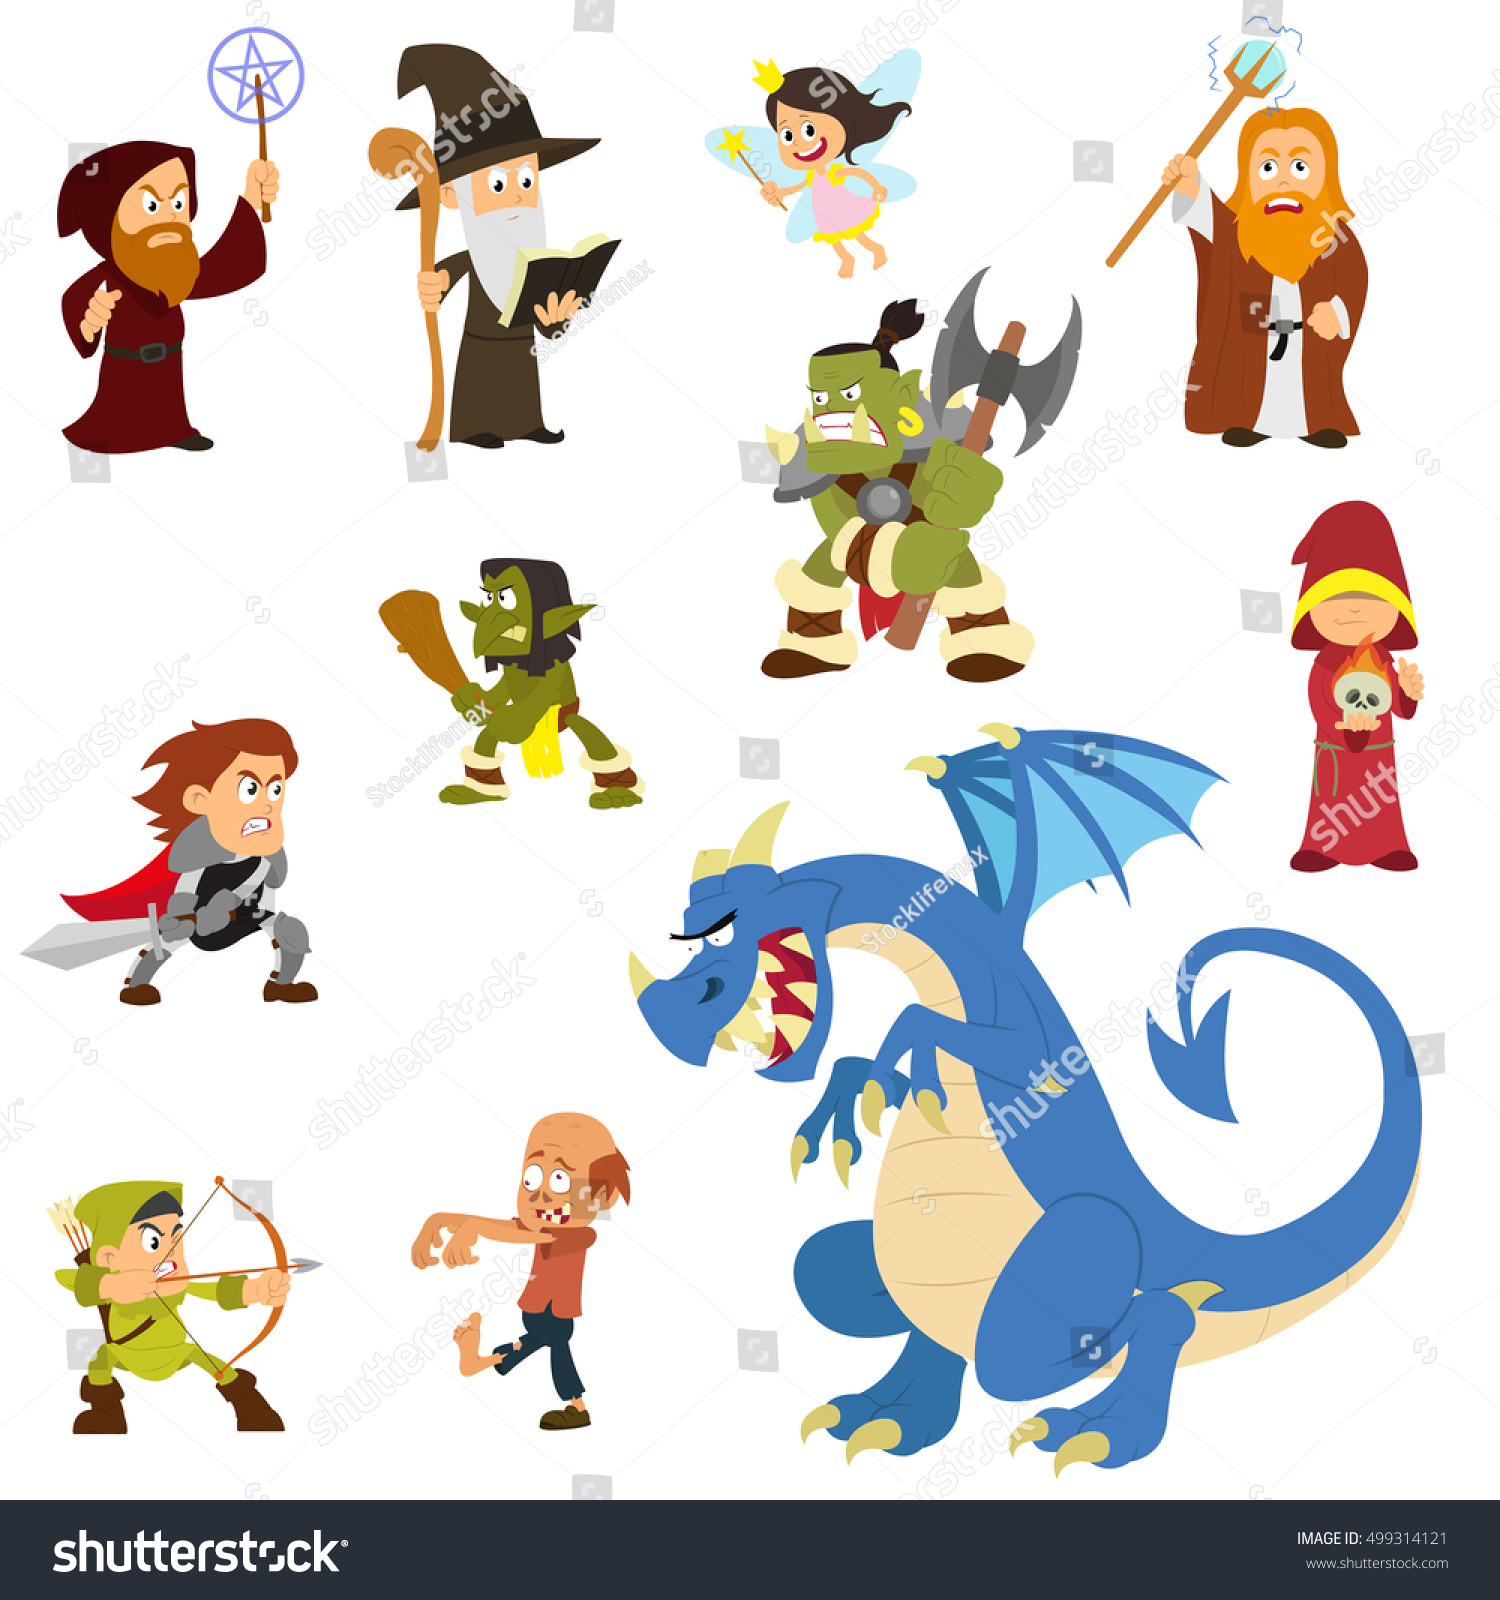 Fairy Tale Characters Fantasy Heroes Villains Stock Vector ...